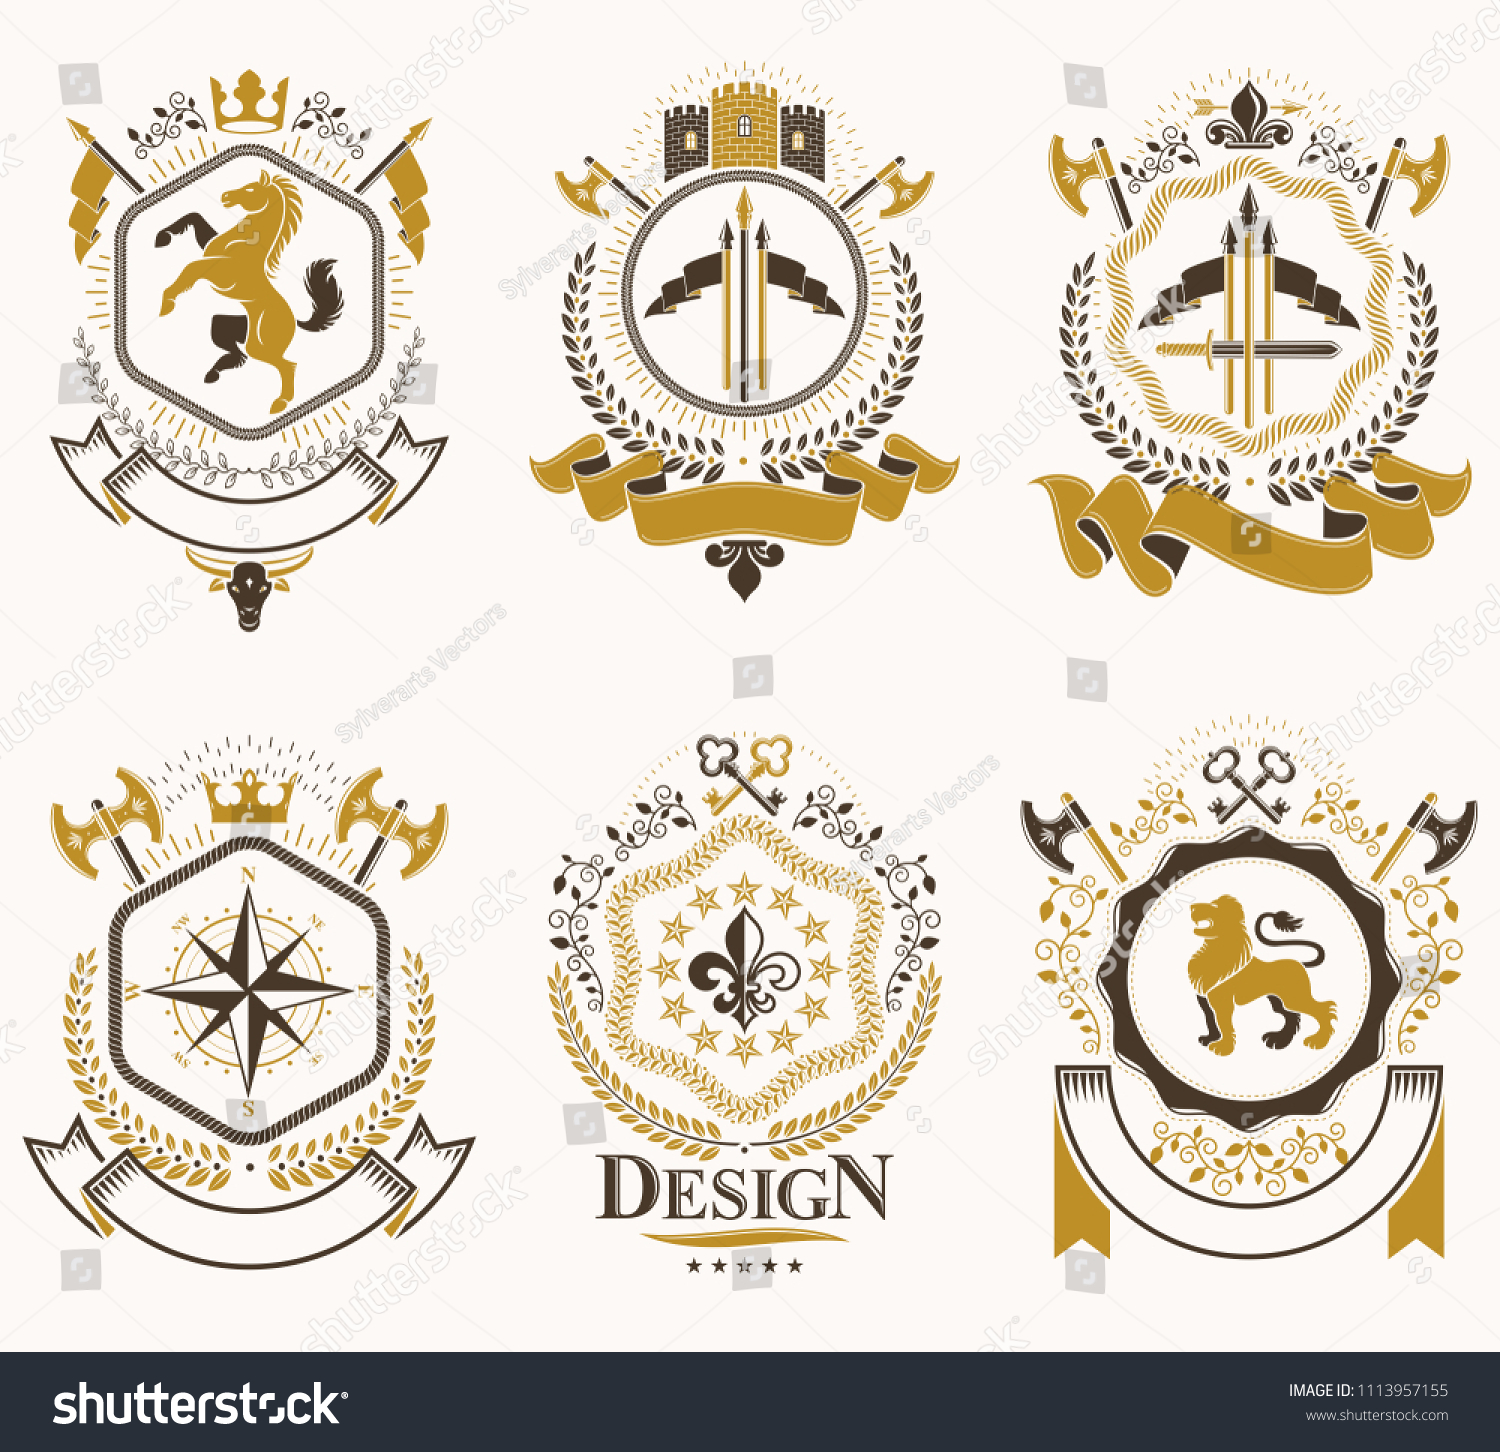 Vintage Heraldic Coat Of Arms Designed In Award Style Medieval